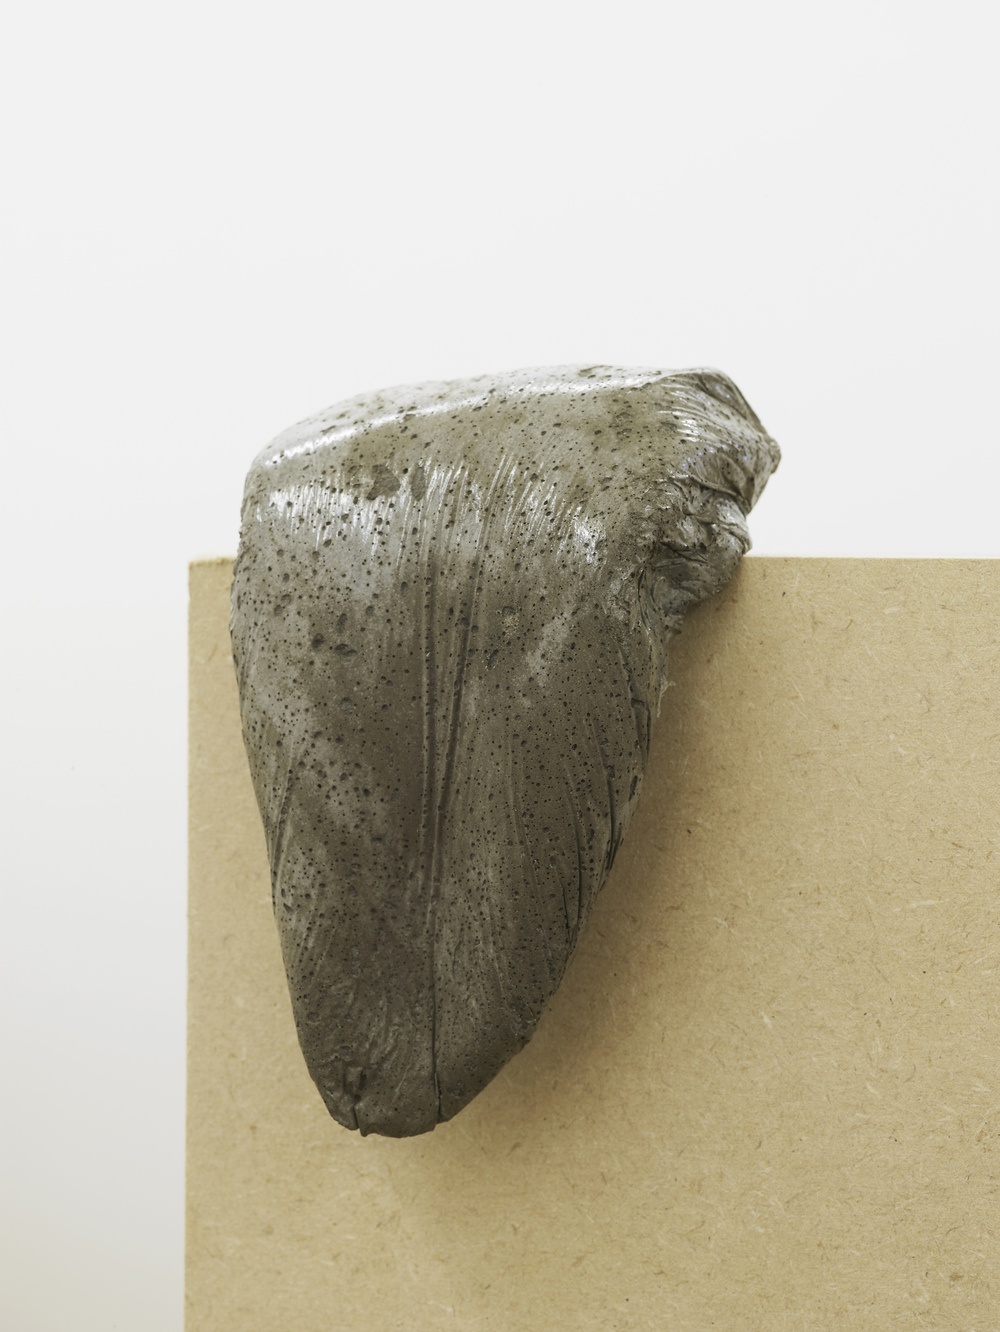 analogue series (tongue) 2013 Concrete 12.5 x 8.5 x 8 cm / 4.9 x 3.3 x 3.1 in